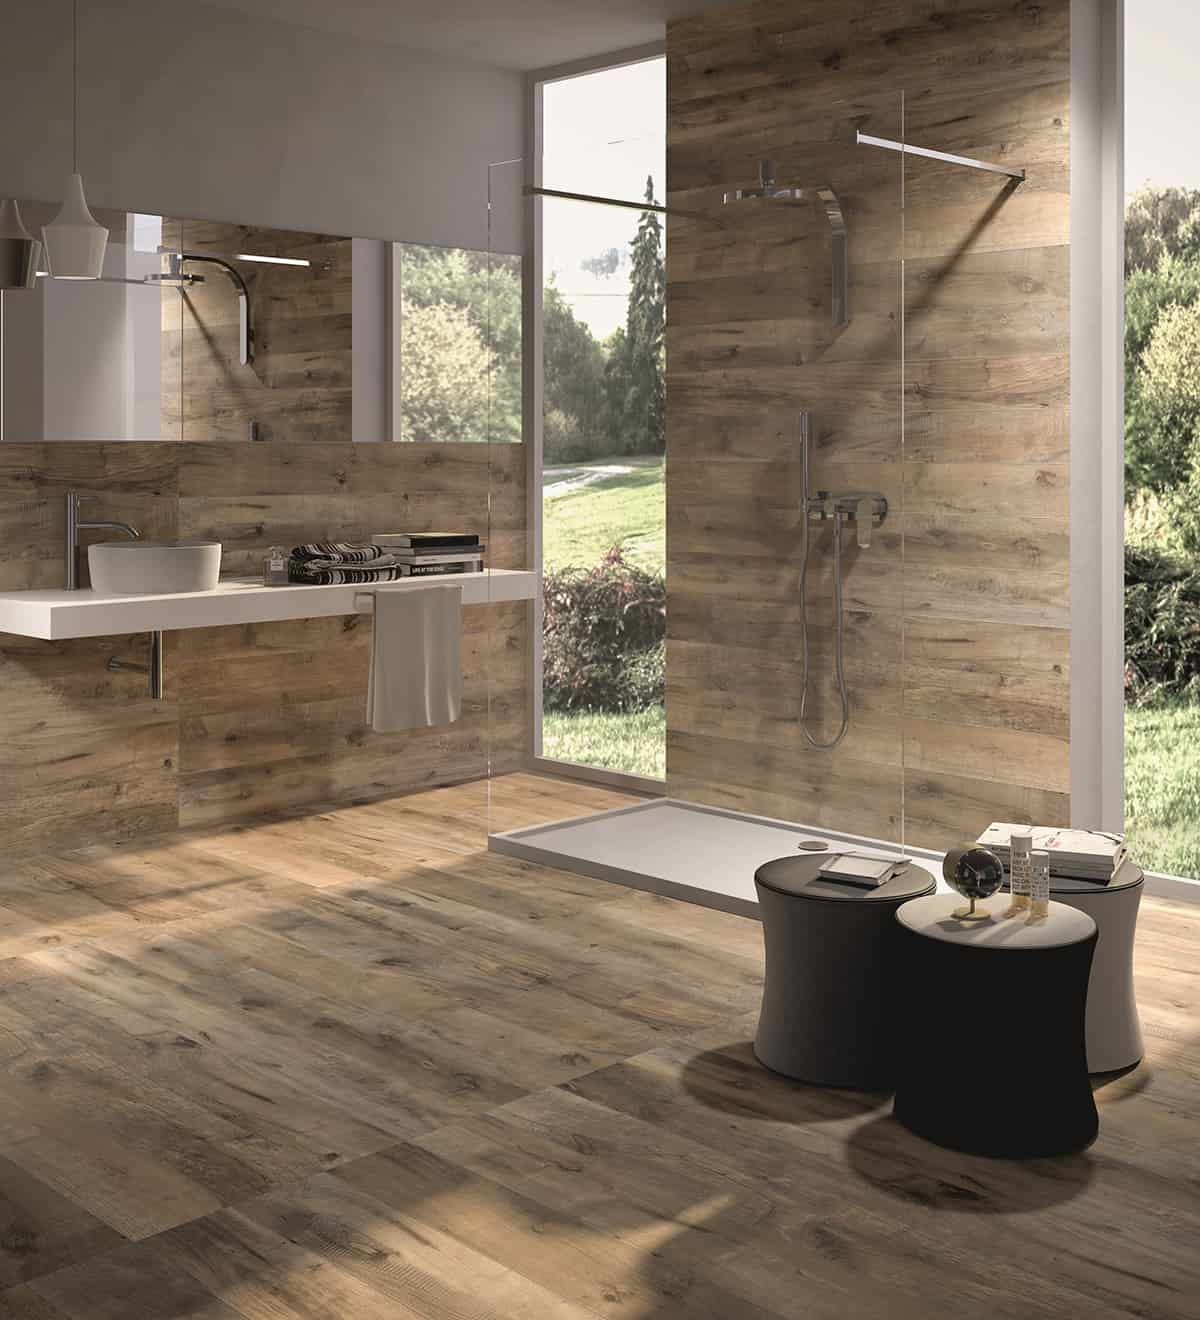 Wooden Bathroom Tiles: Wood Look Tile: 17 Distressed, Rustic, Modern Ideas